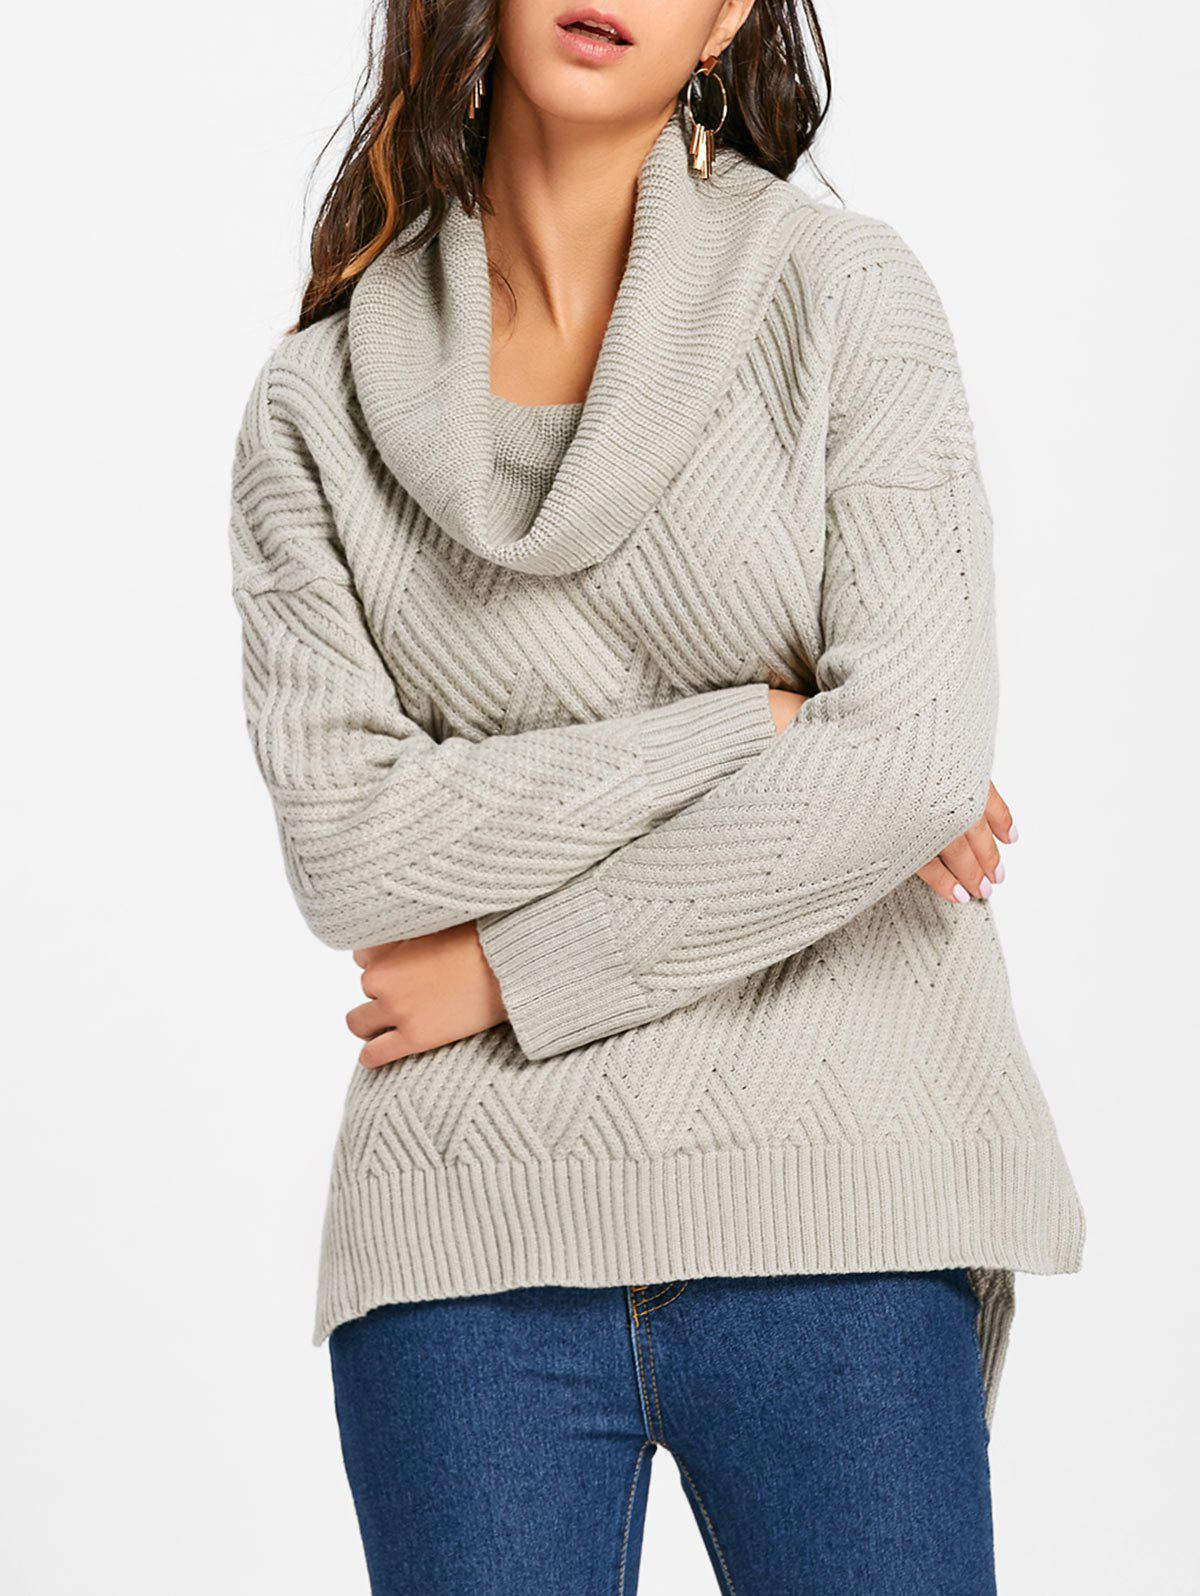 Cowl Neck Side Slit Knitted Sweater - GRAY L